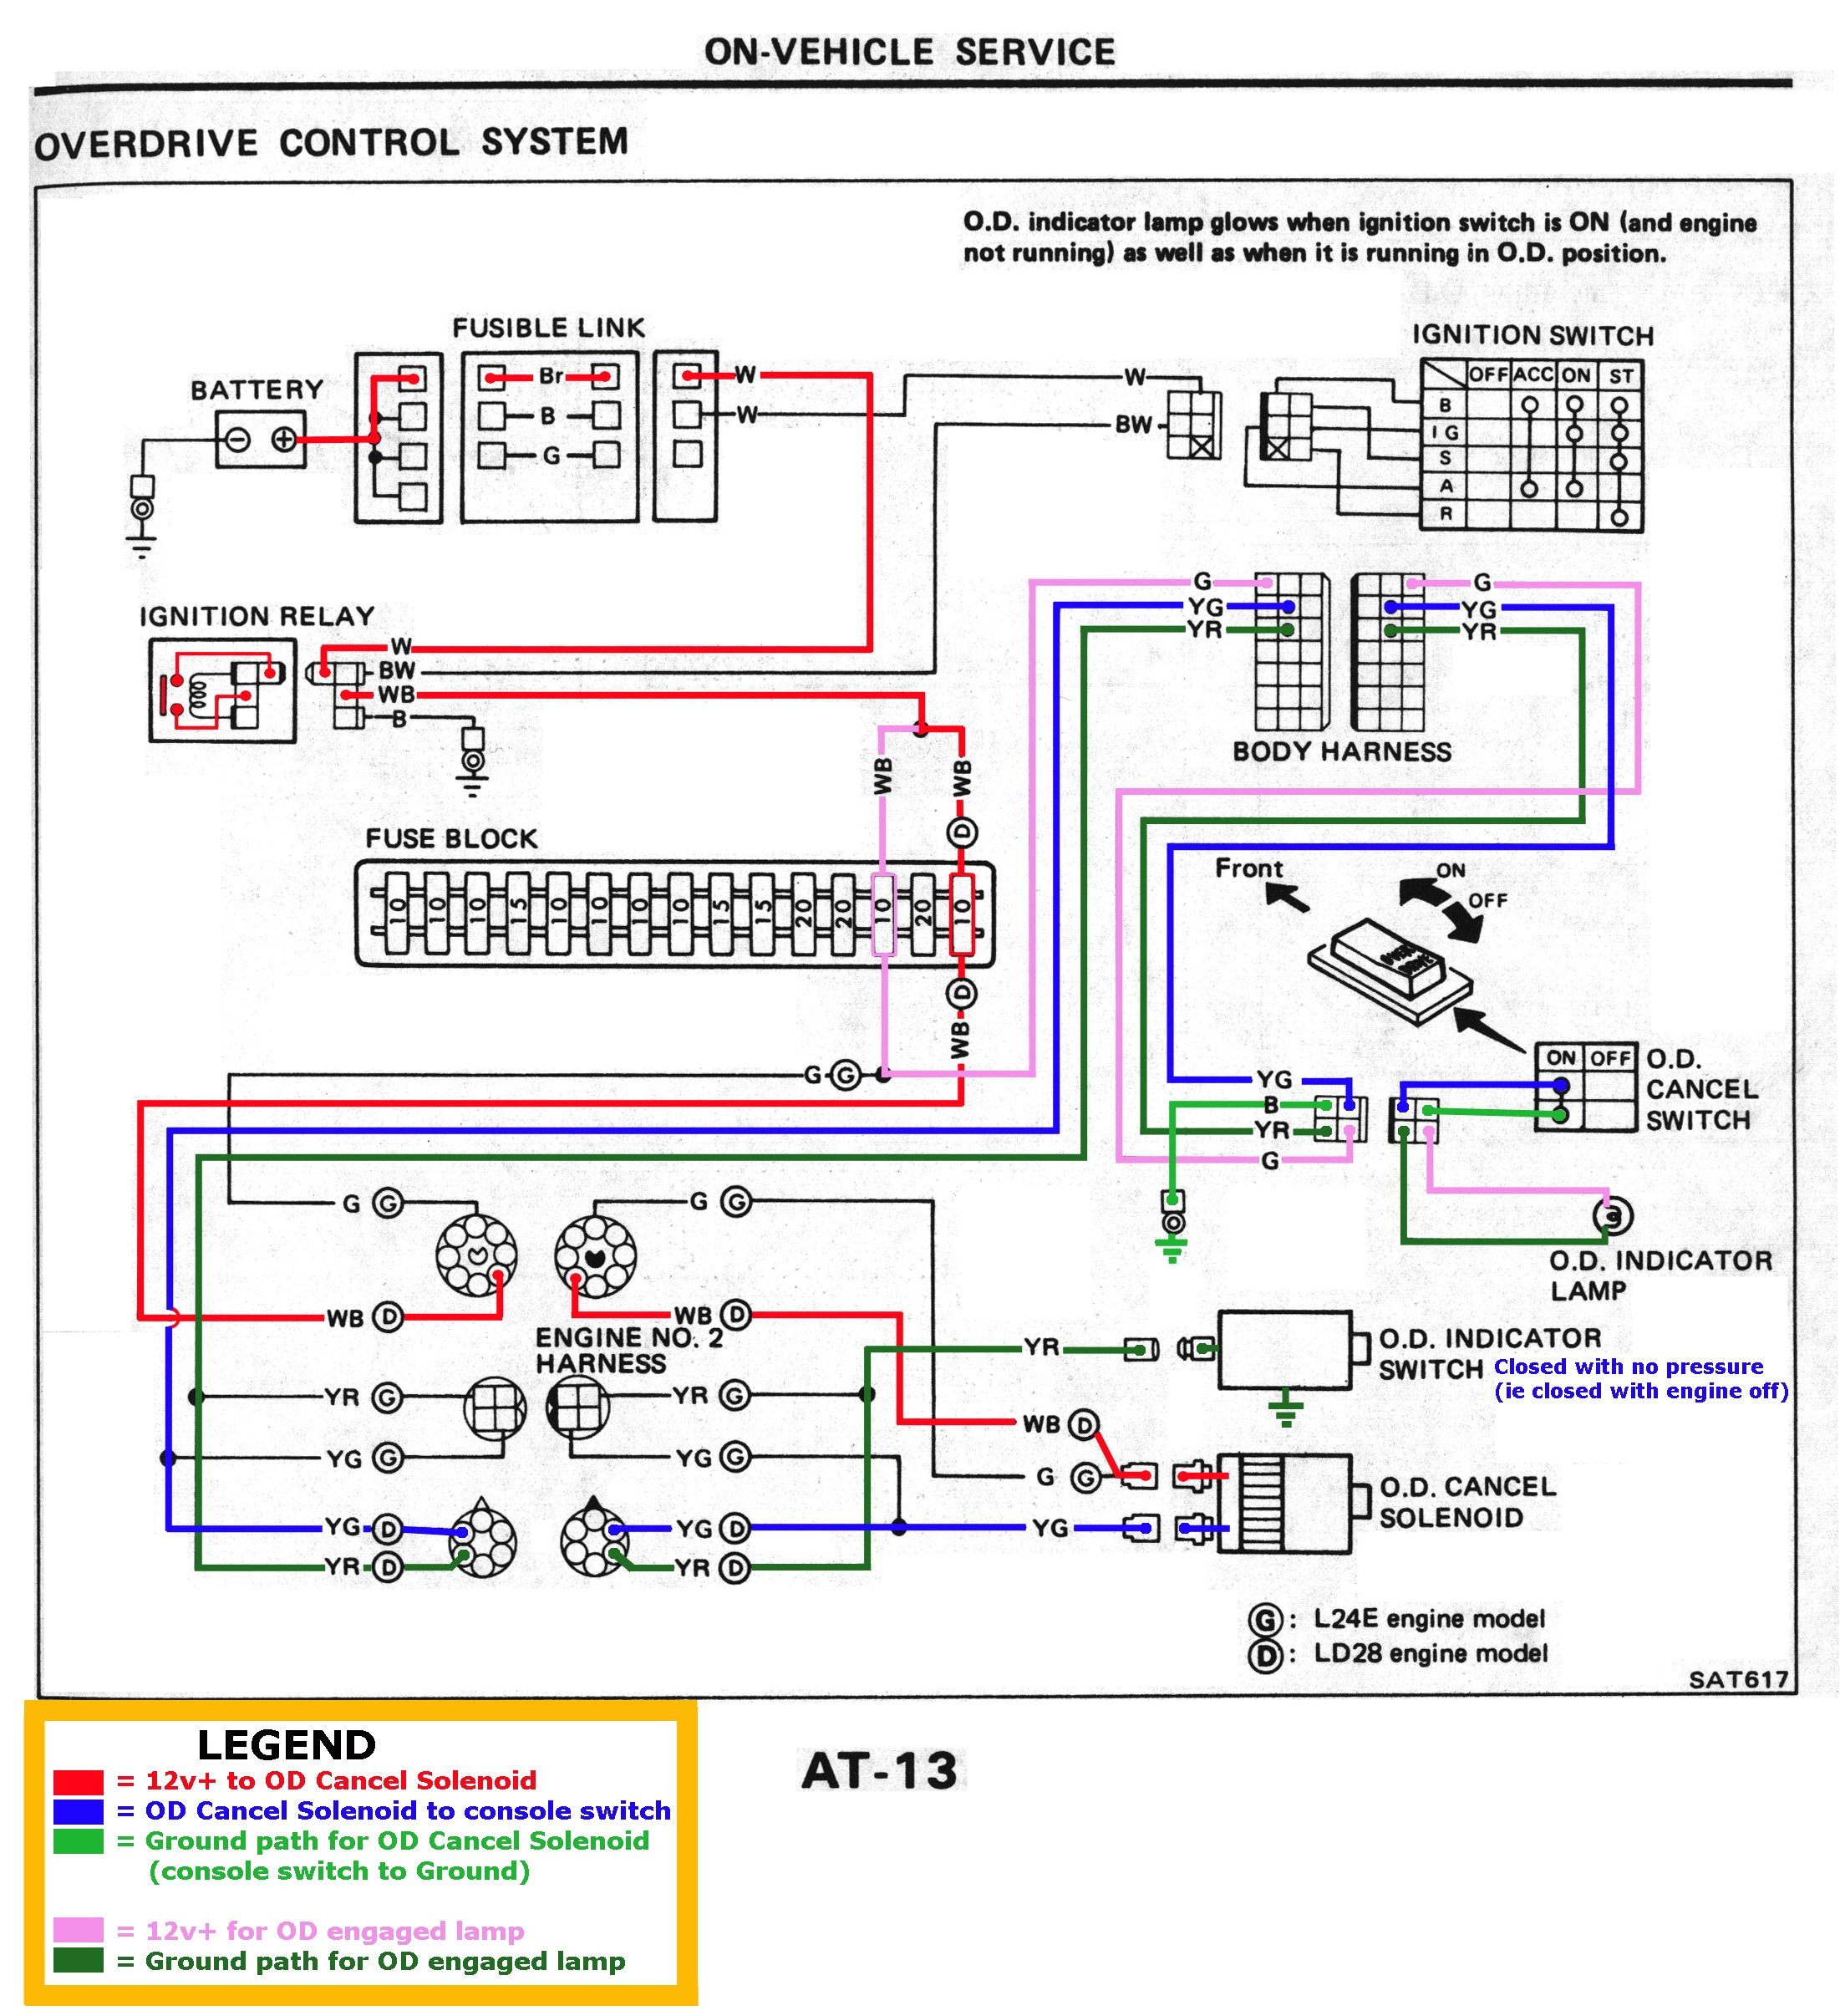 wiring diagram for 97 chevy cavalier free download wiring diagram 220 volt wiring diagram for gei 56110 motor